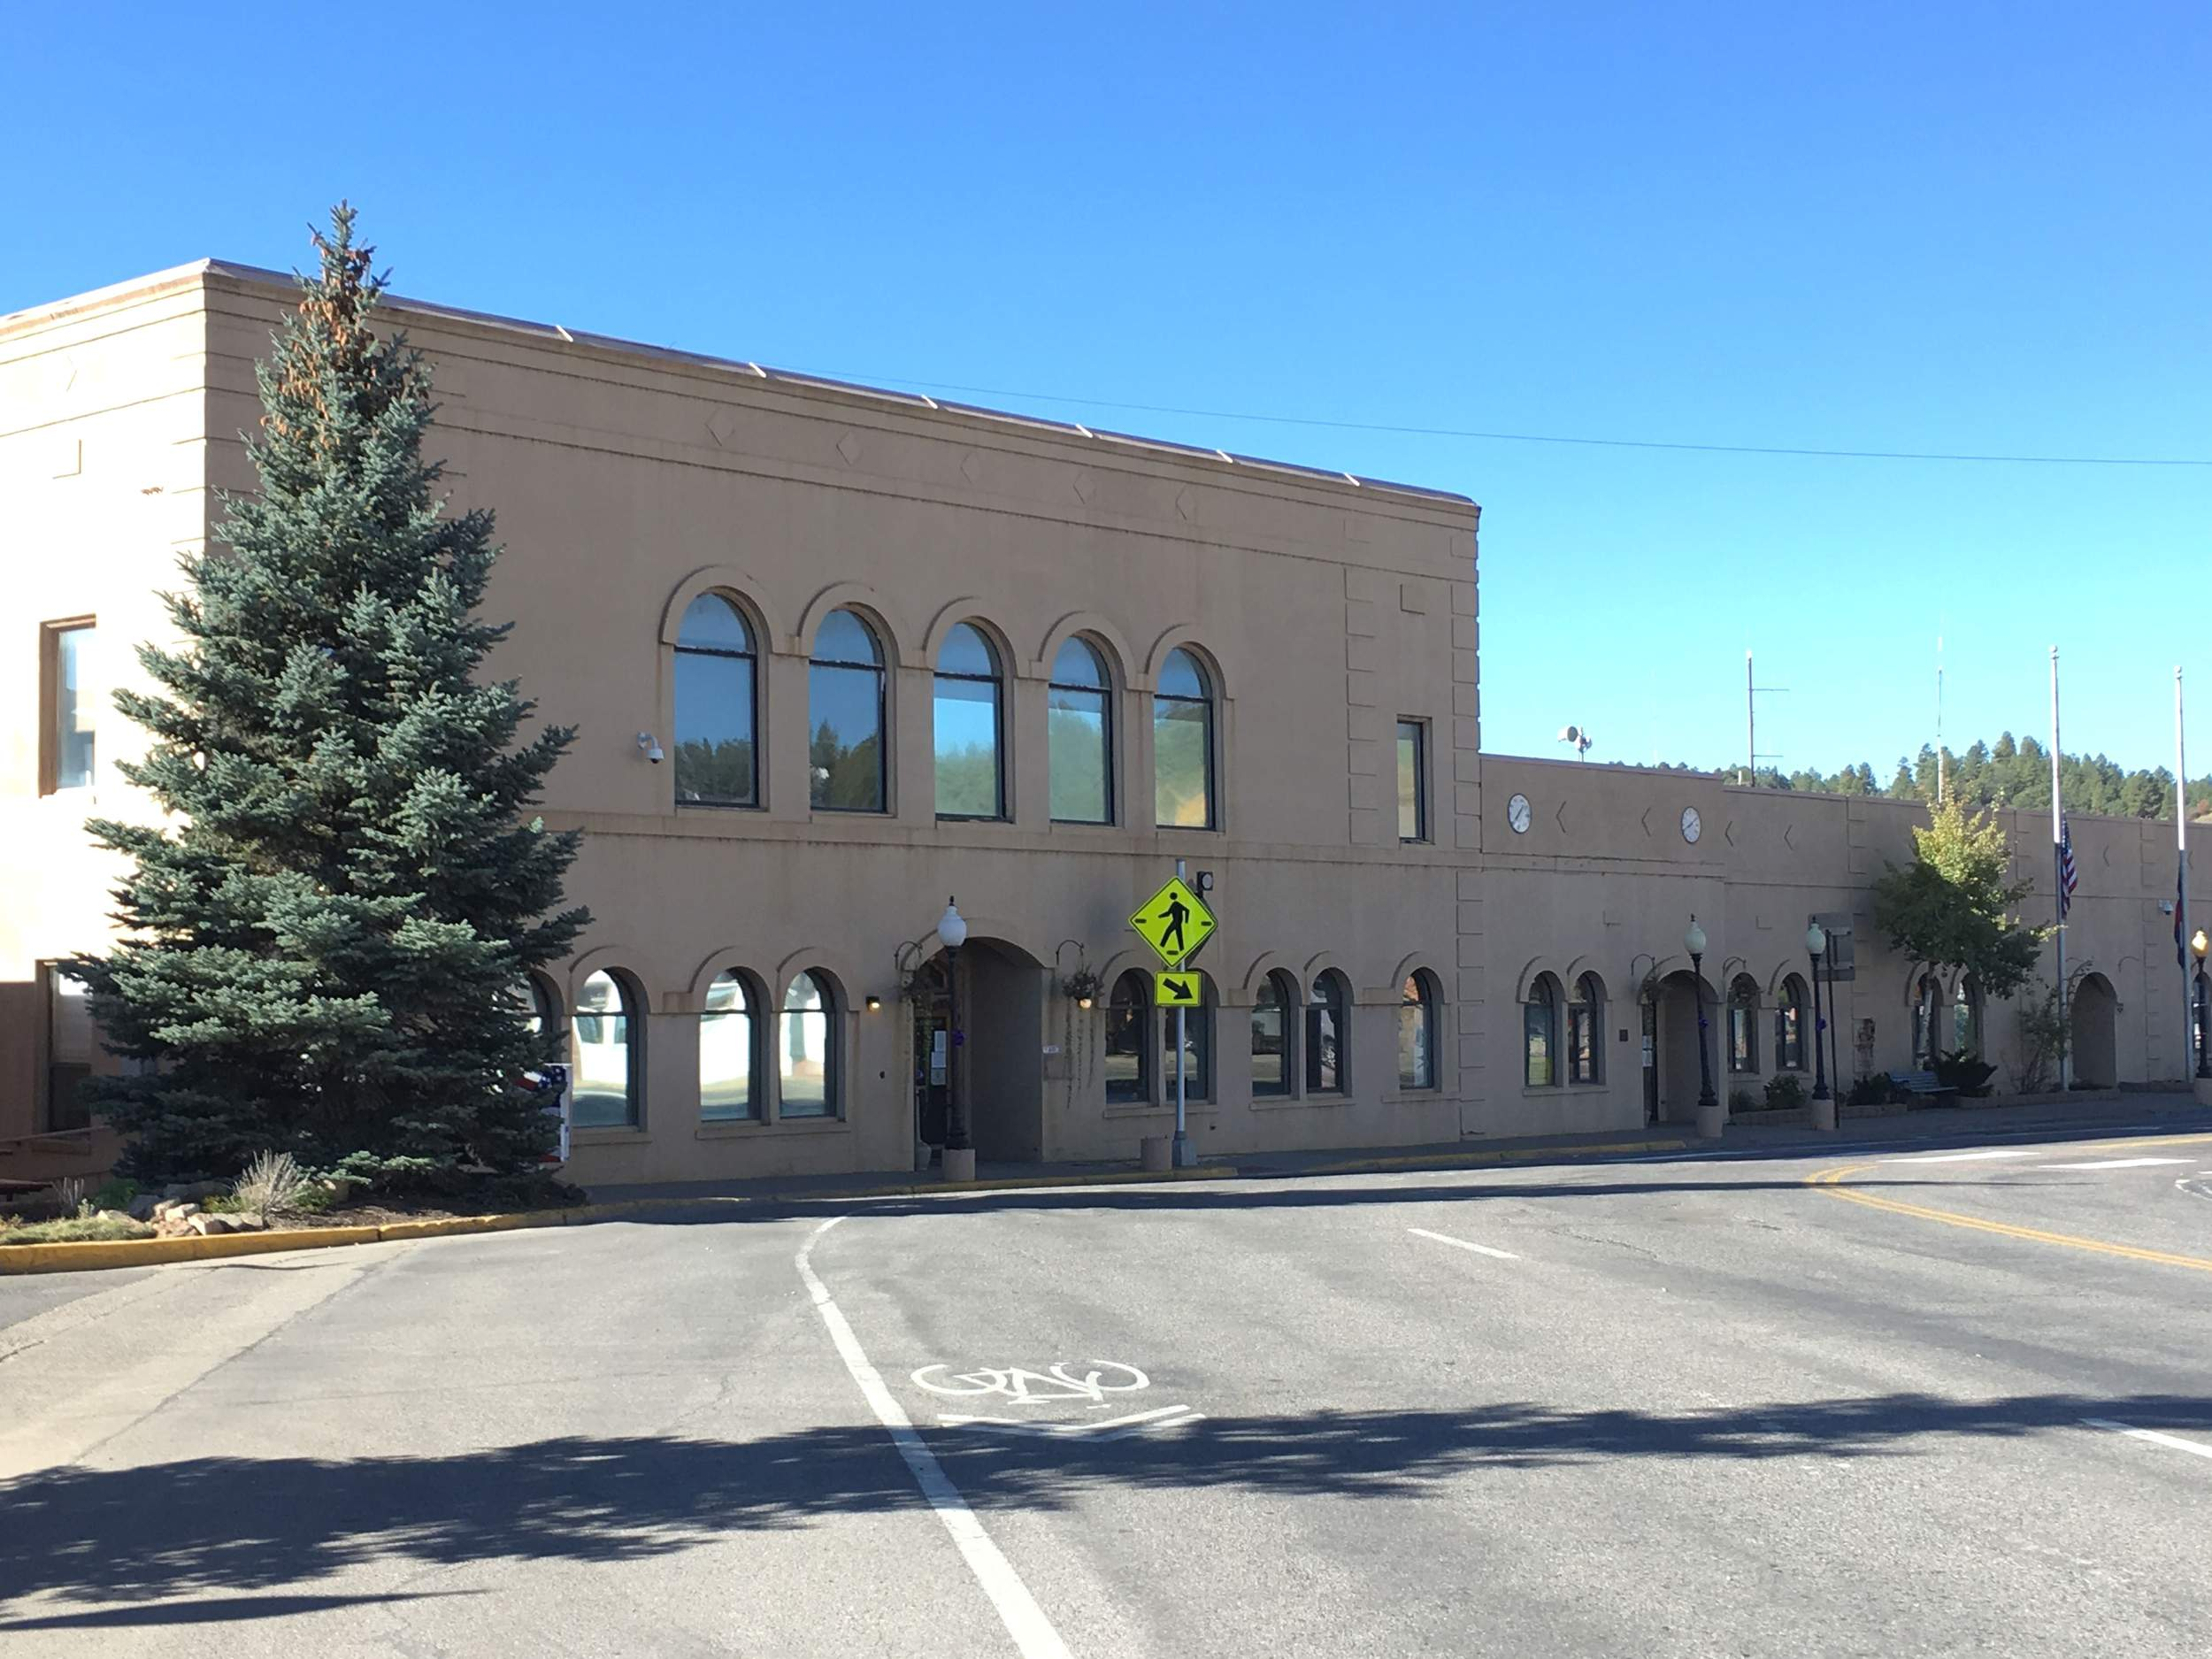 archuleta county Search archuleta county real estate property listings to find homes for sale in archuleta county, co browse houses for sale in archuleta county today.